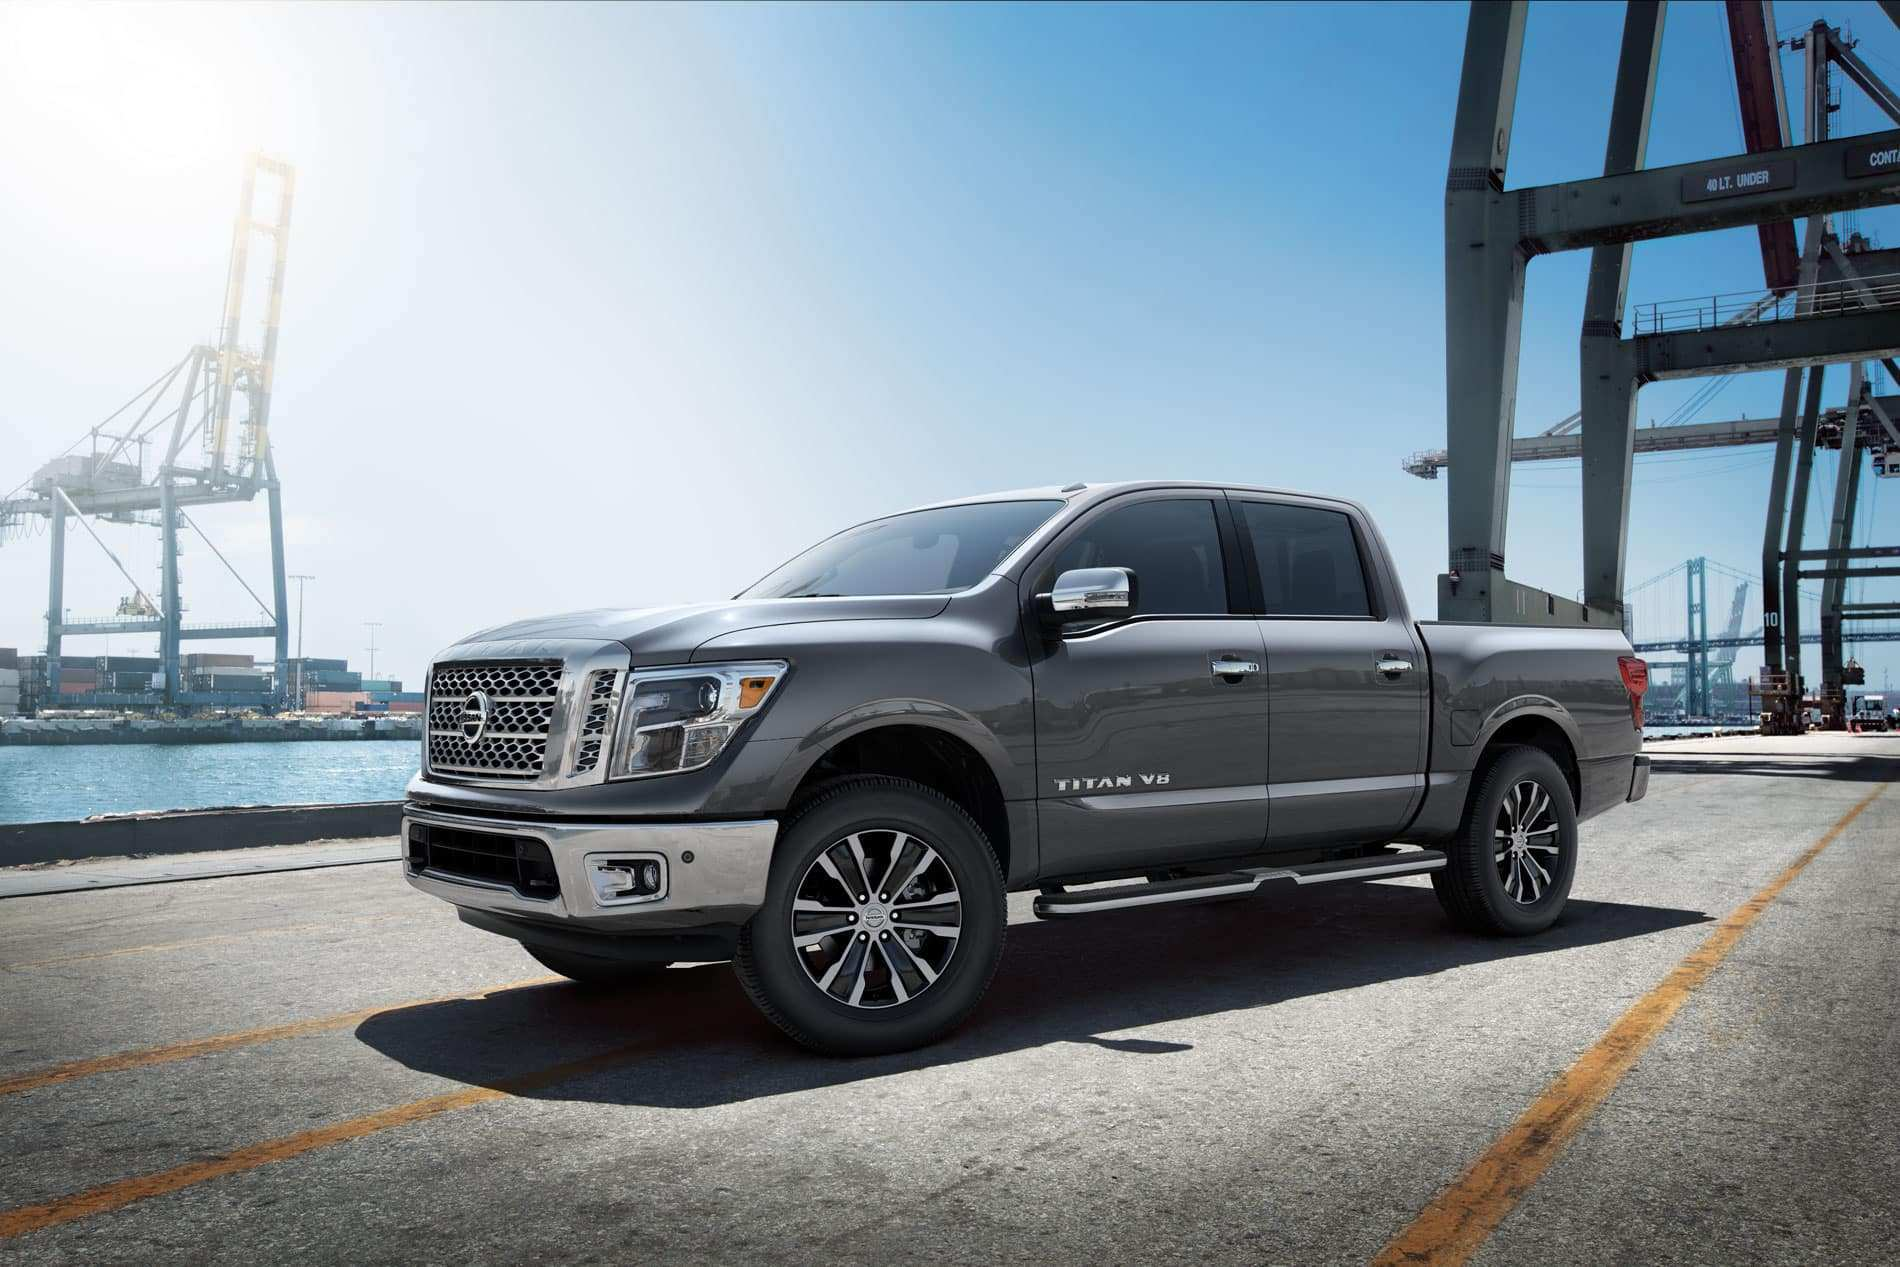 63 Best Review 2019 Nissan Titan Xd Prices with 2019 Nissan Titan Xd